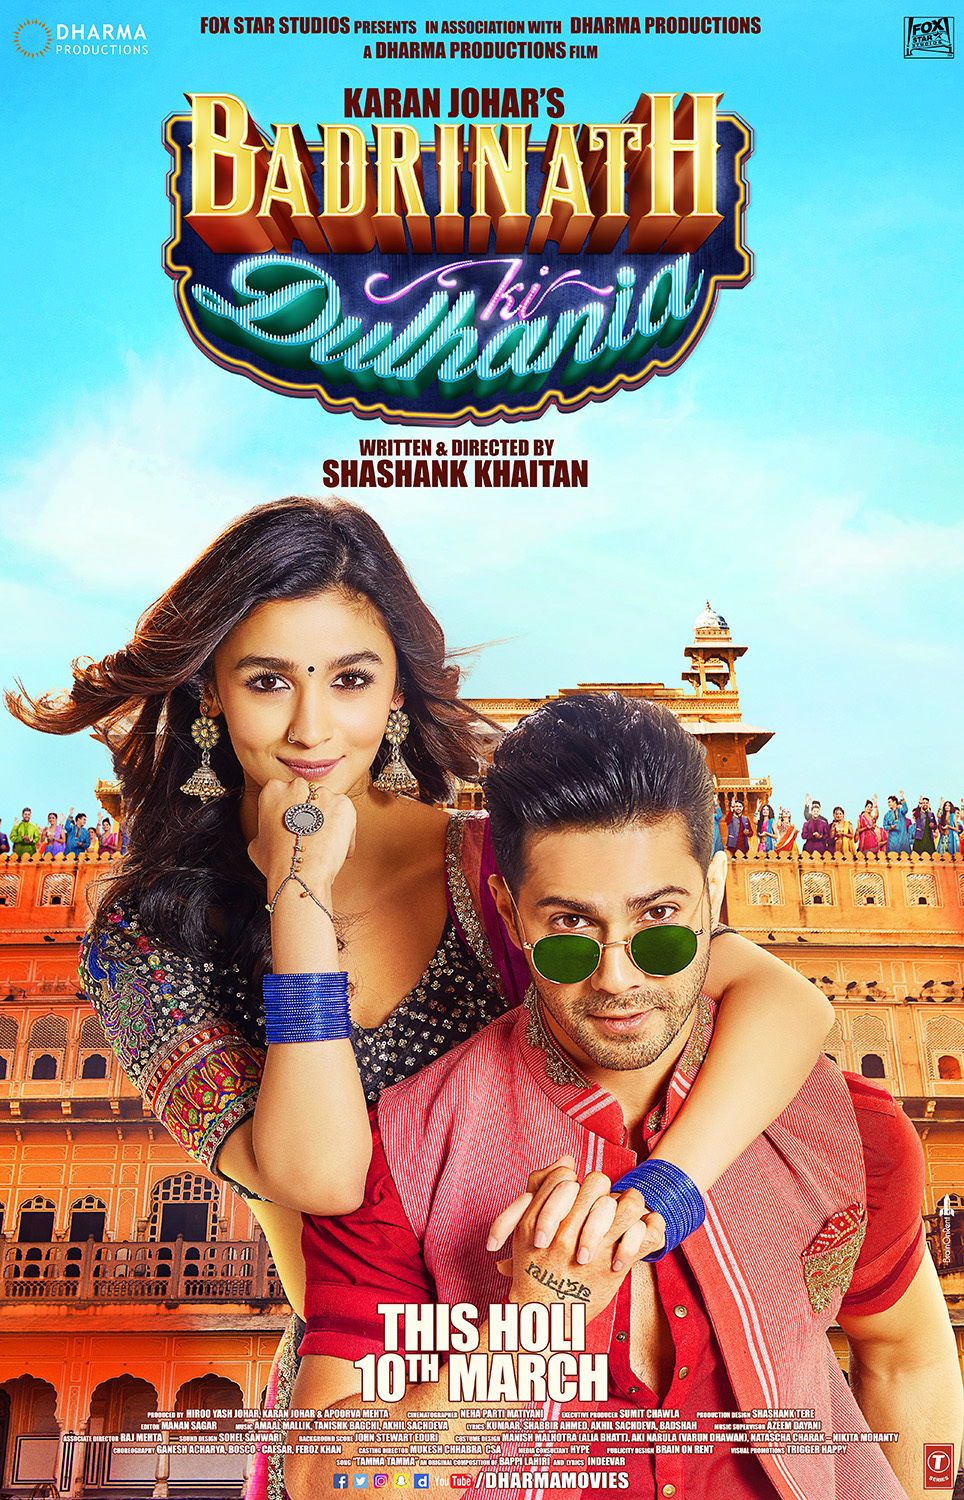 Badrinath Ki Dulhania (2020) Hindi Full Movie 720p HDRip 1GB Download